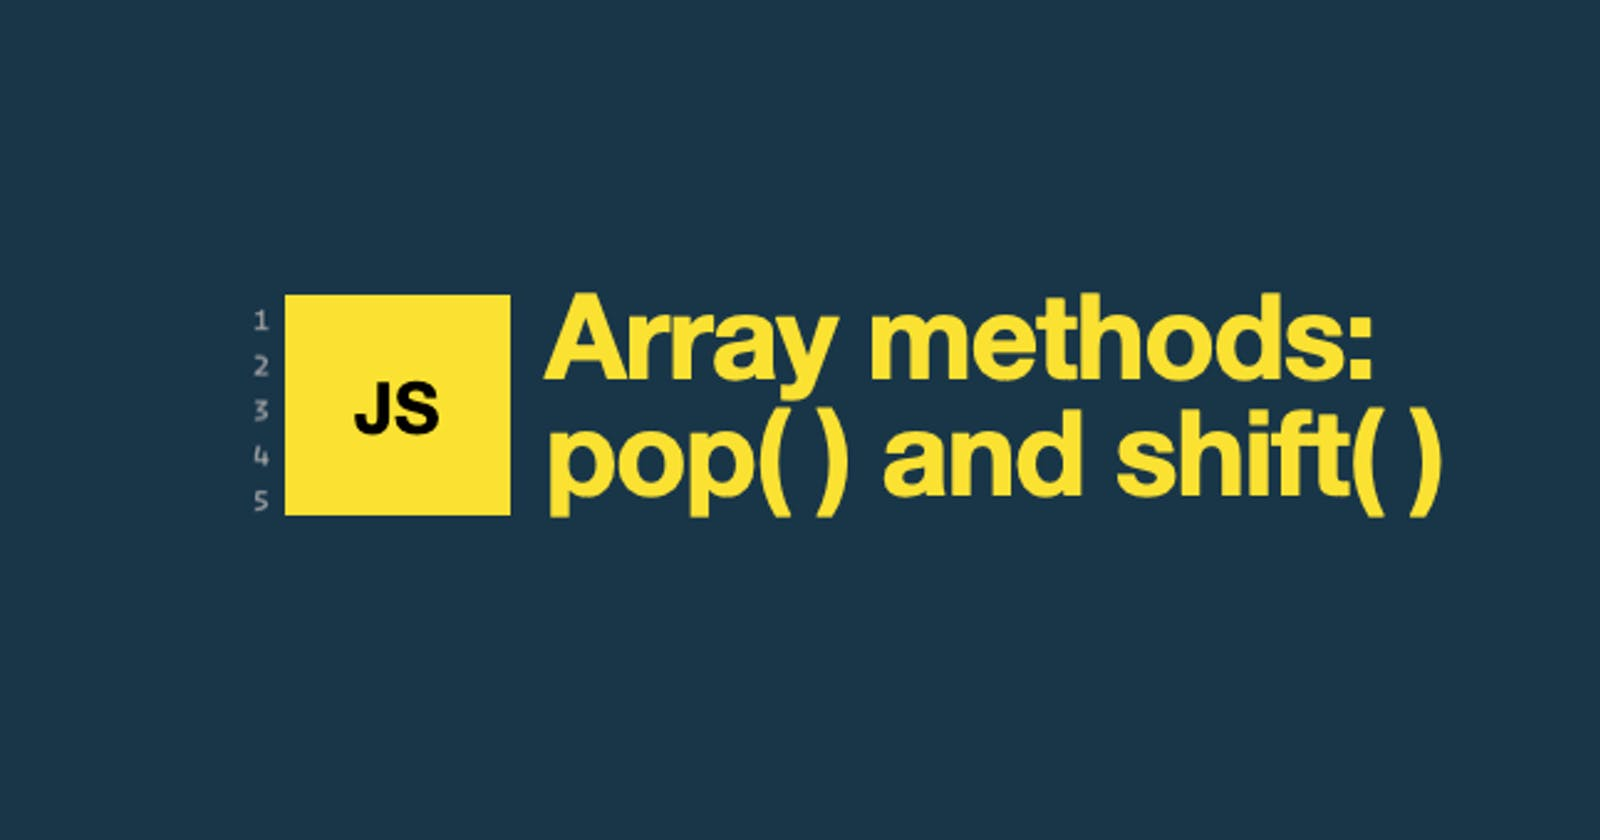 Array methods: pop( ) and shift( )